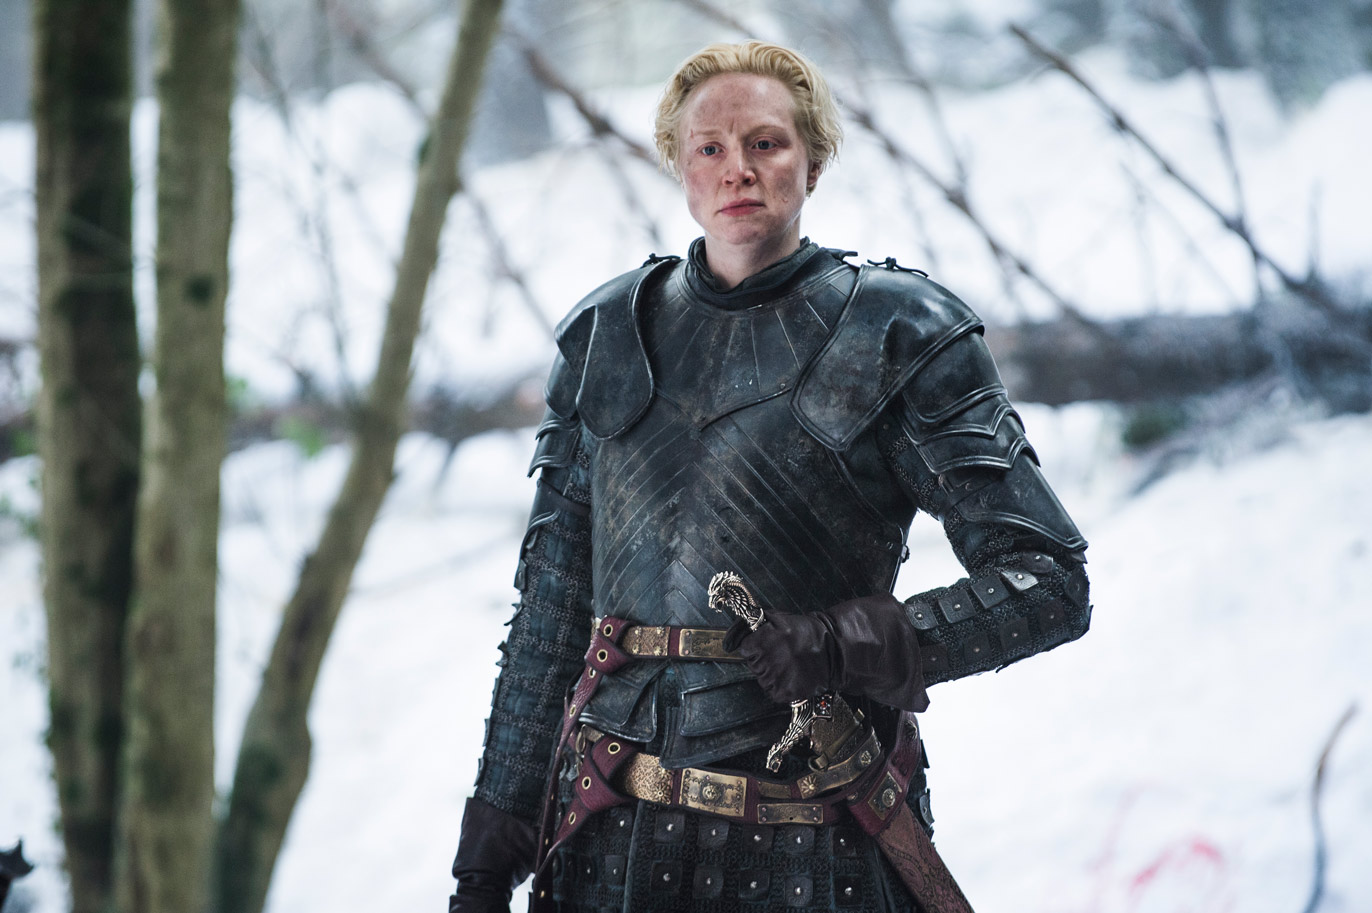 Brienne of Tarth with the Oathkeeper